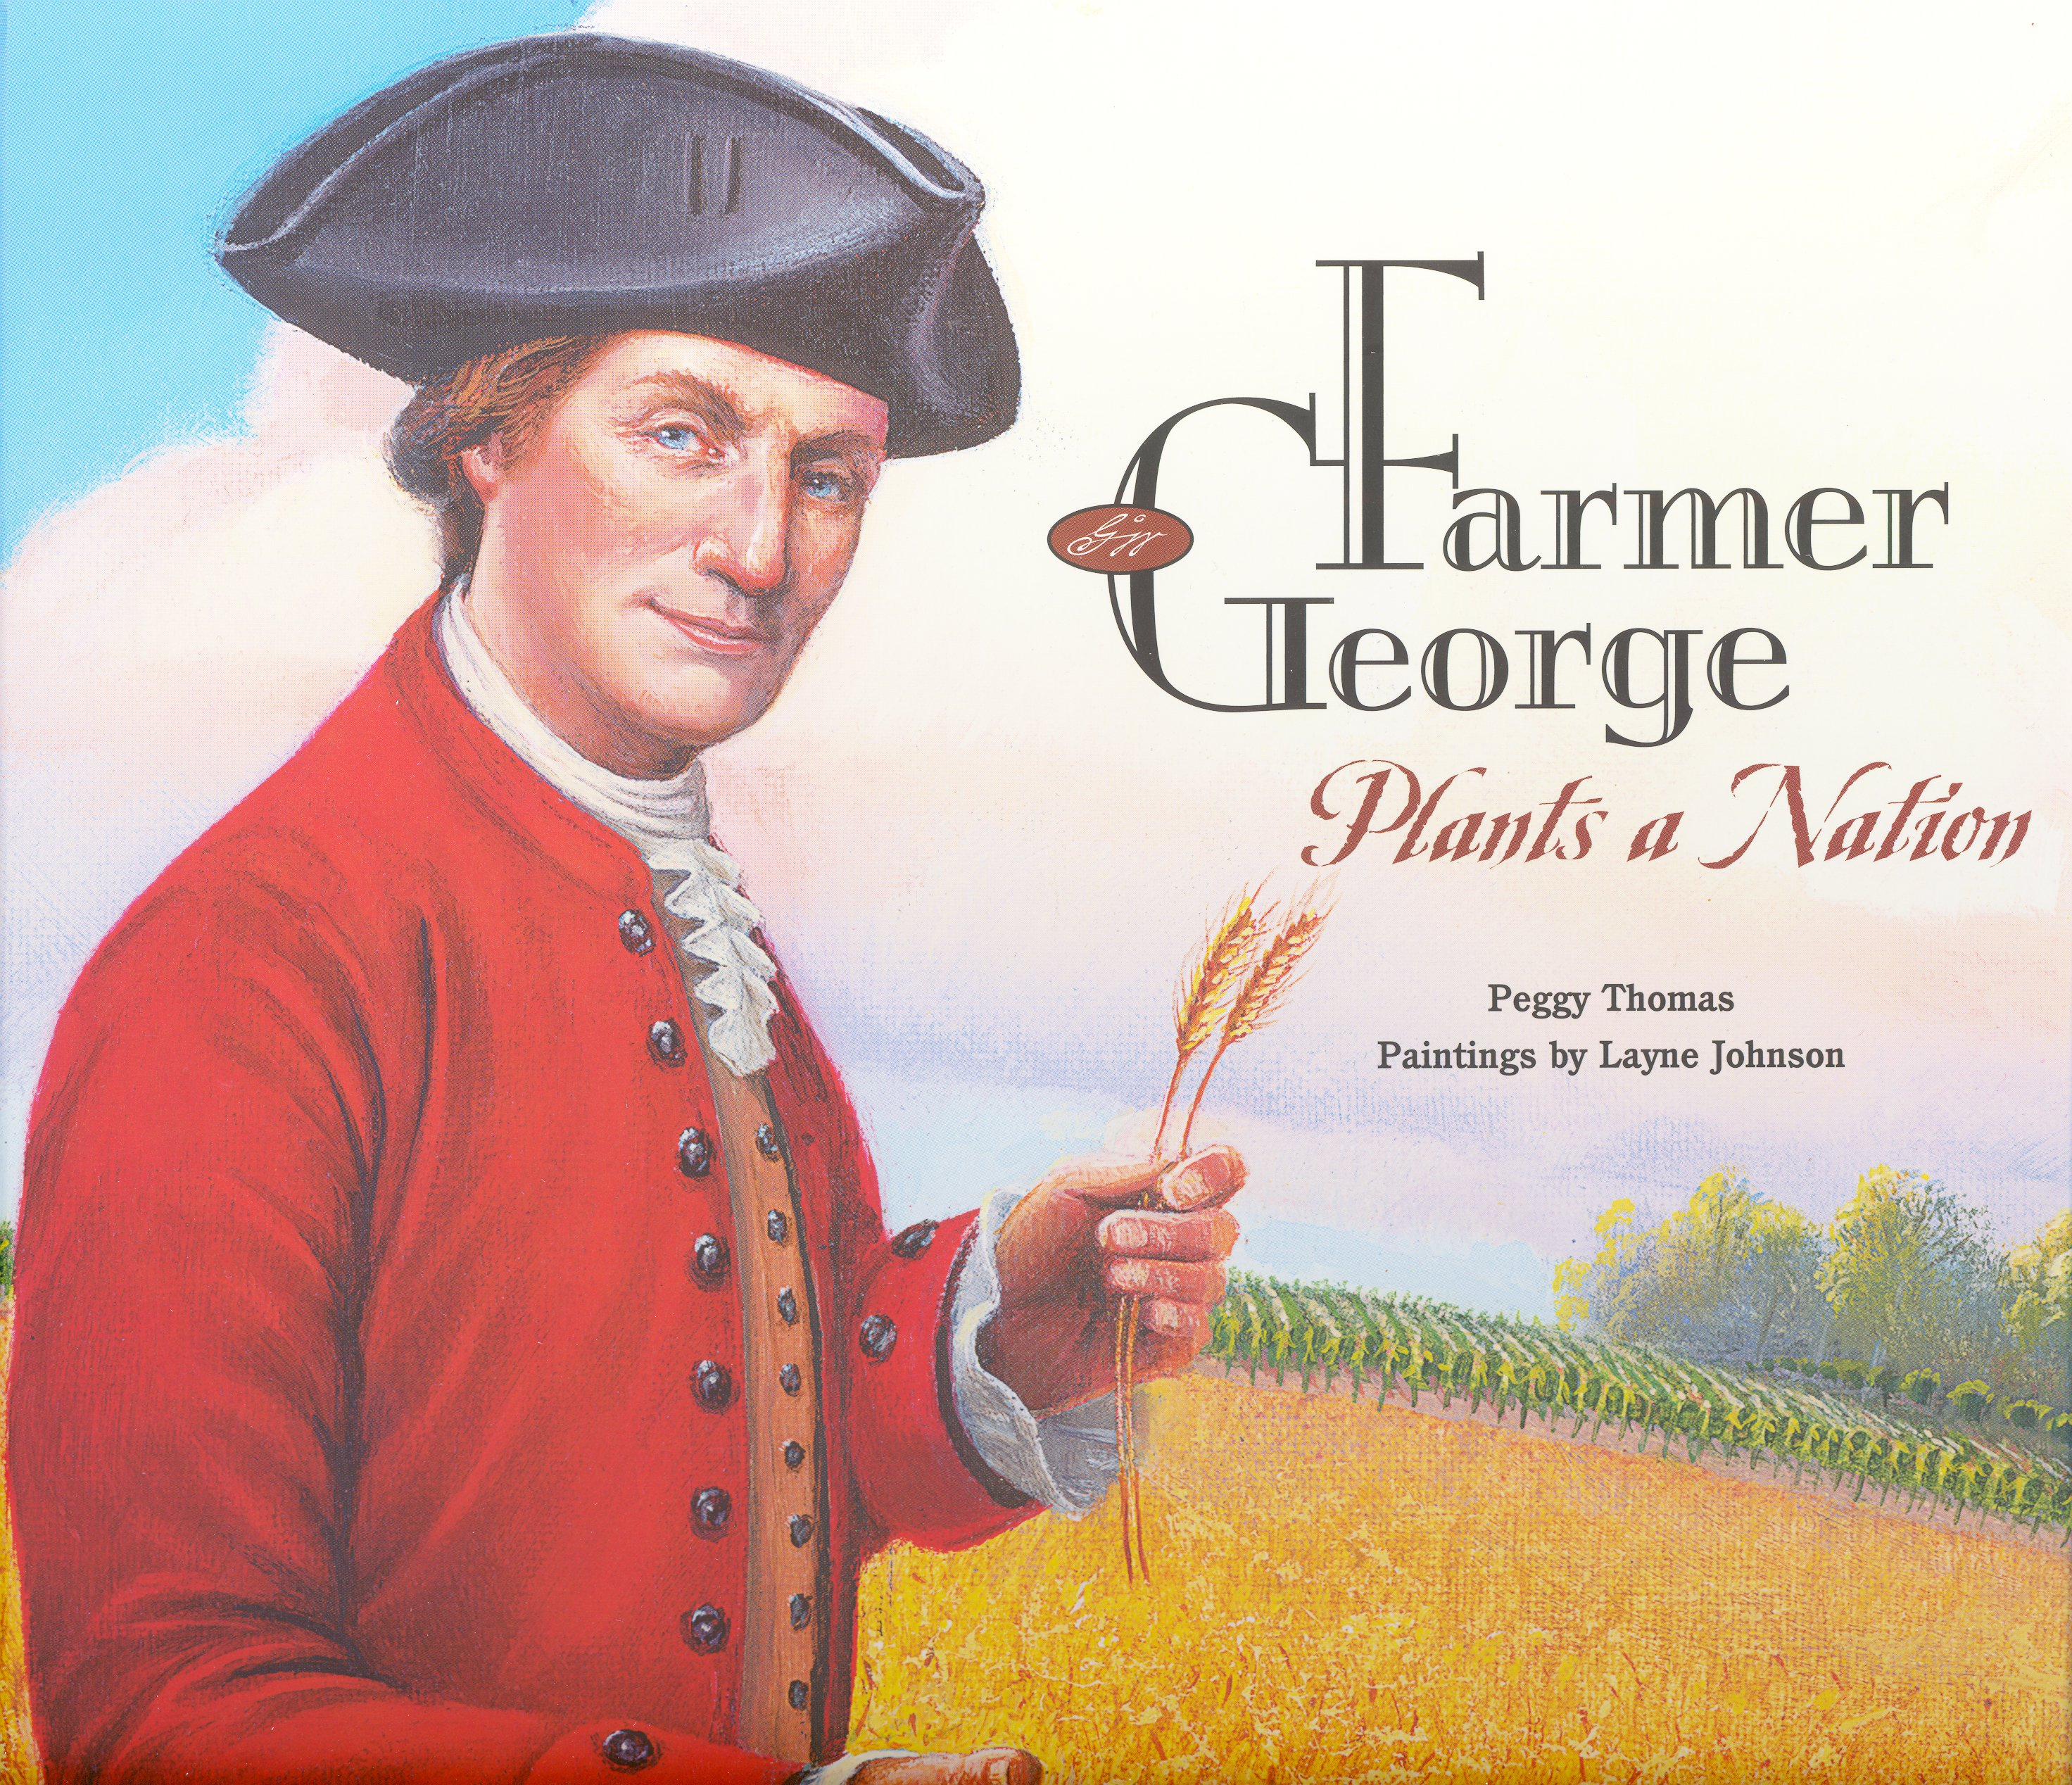 708Farmer George Plants a Nation